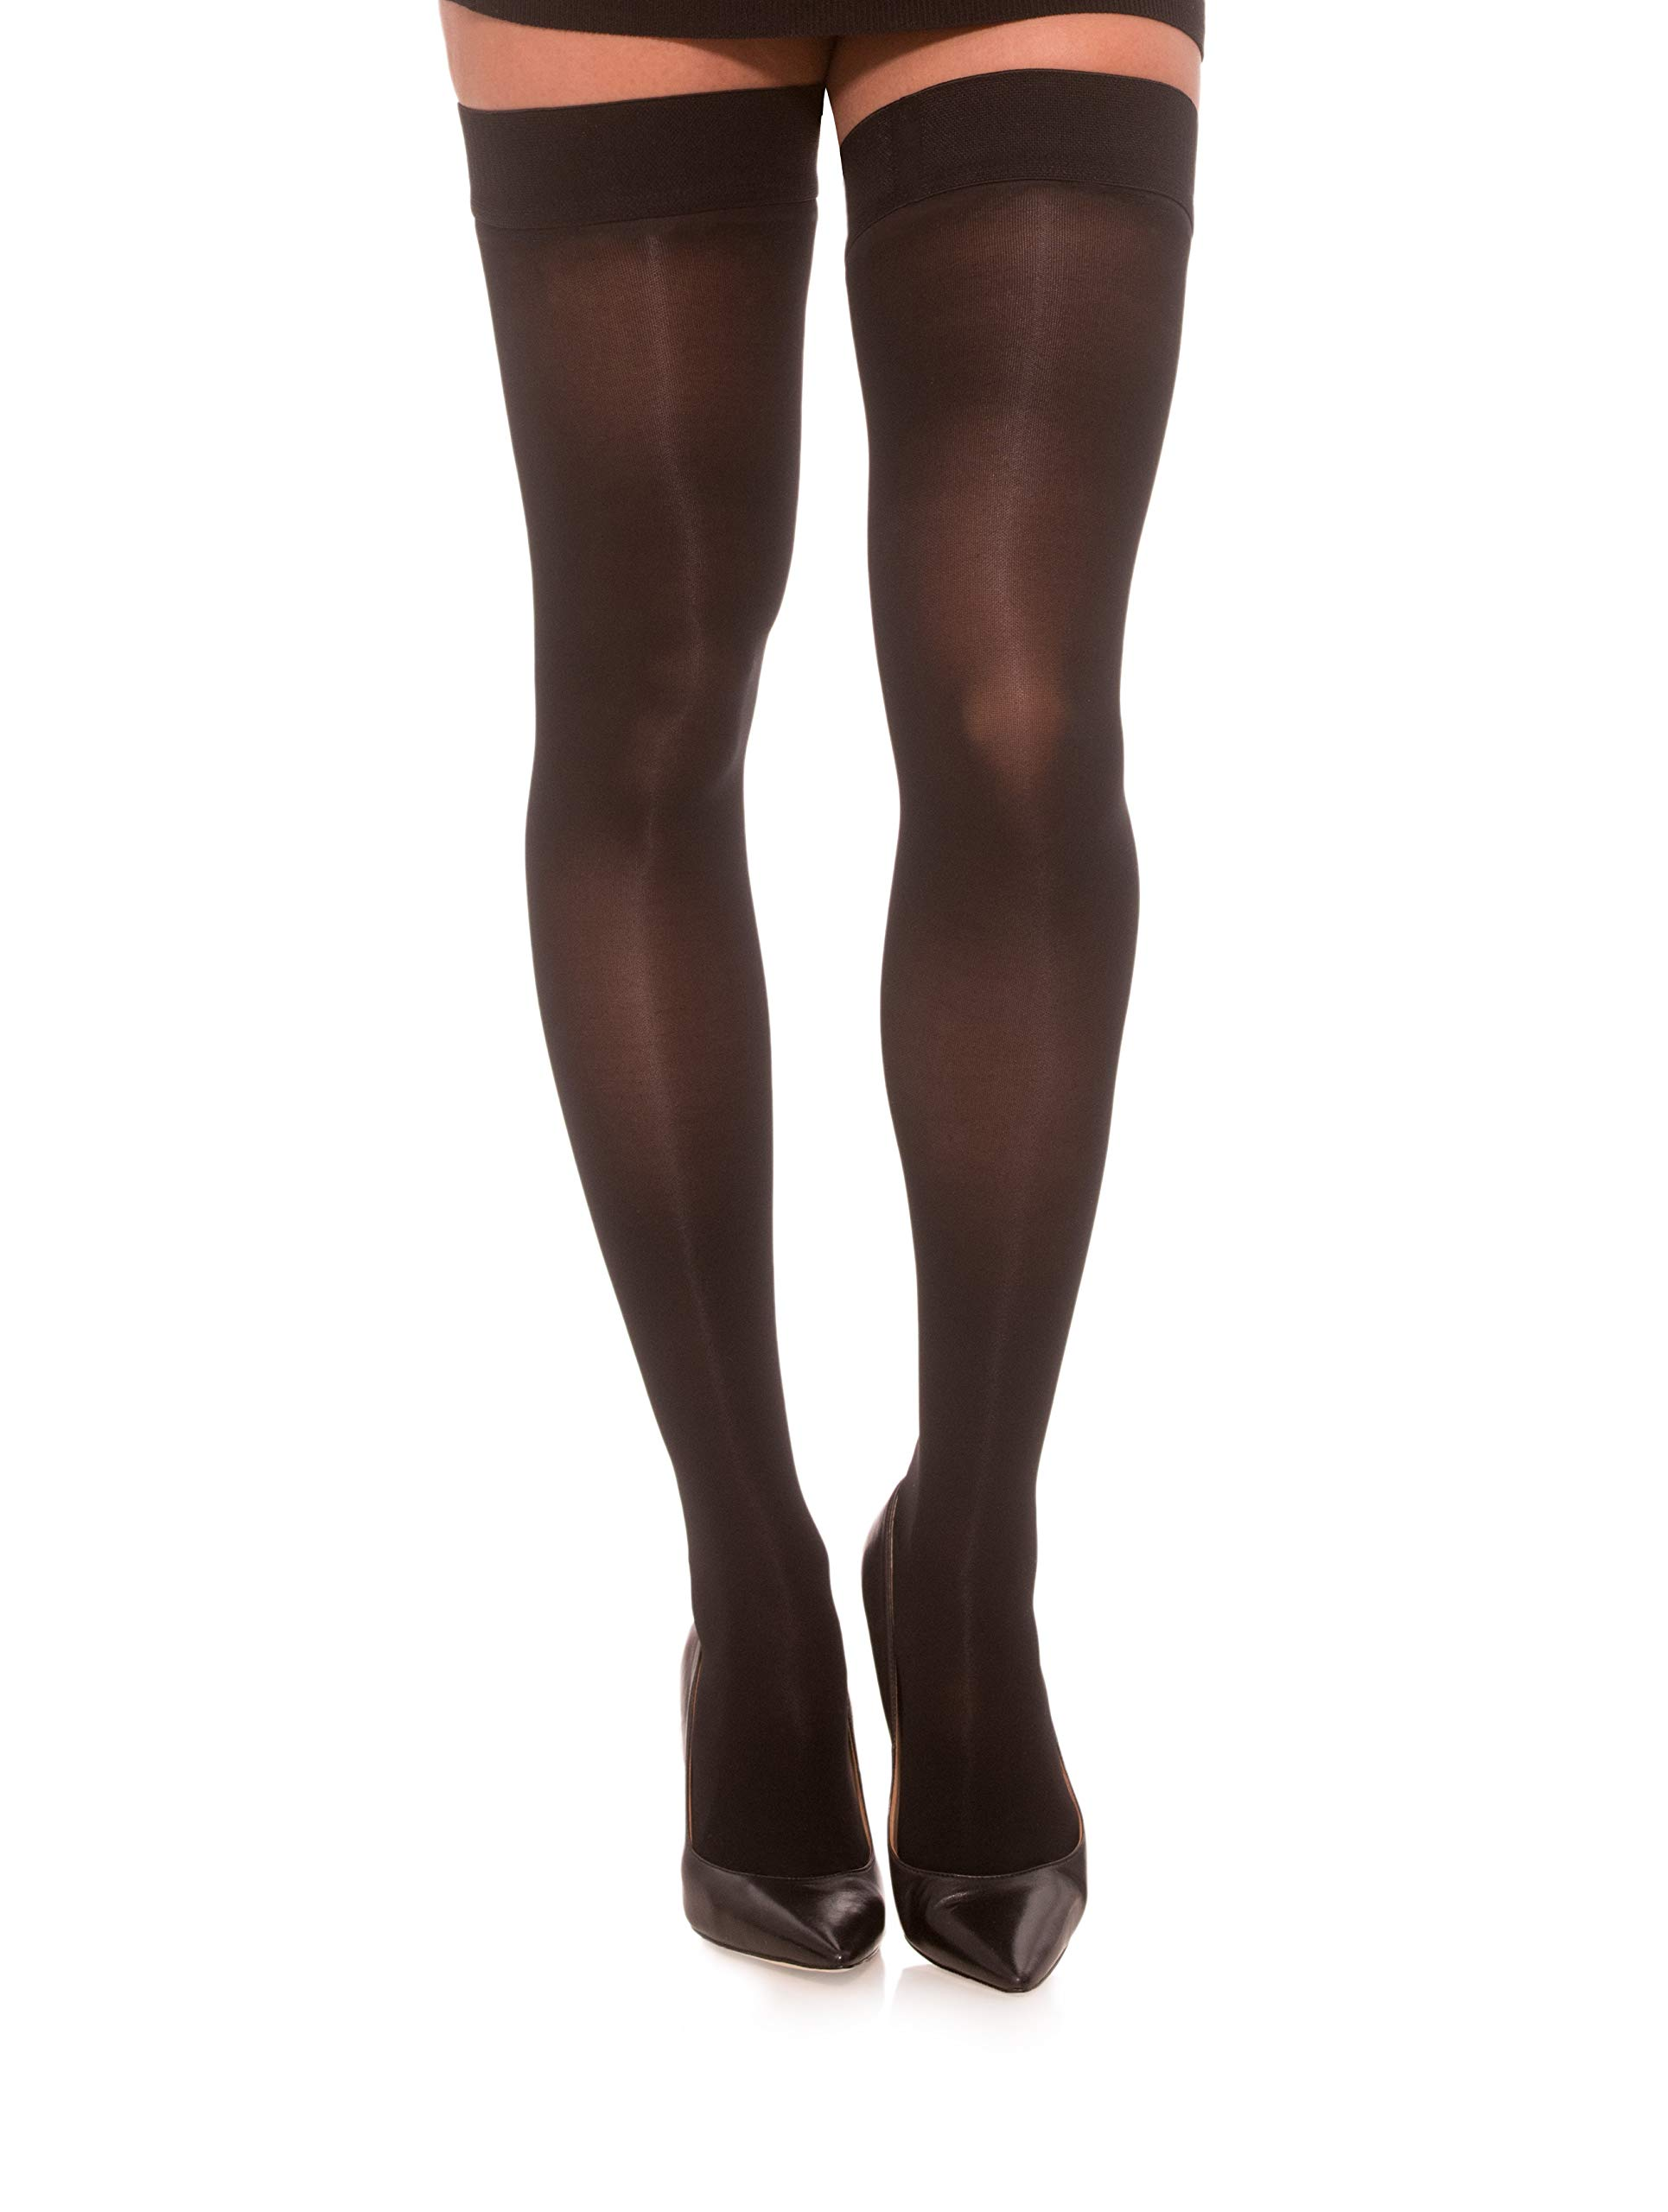 Jomi Compression Thigh High Stockings Collection, 20-30mmHg Sheer Closed Toe 245 (Small, Black)